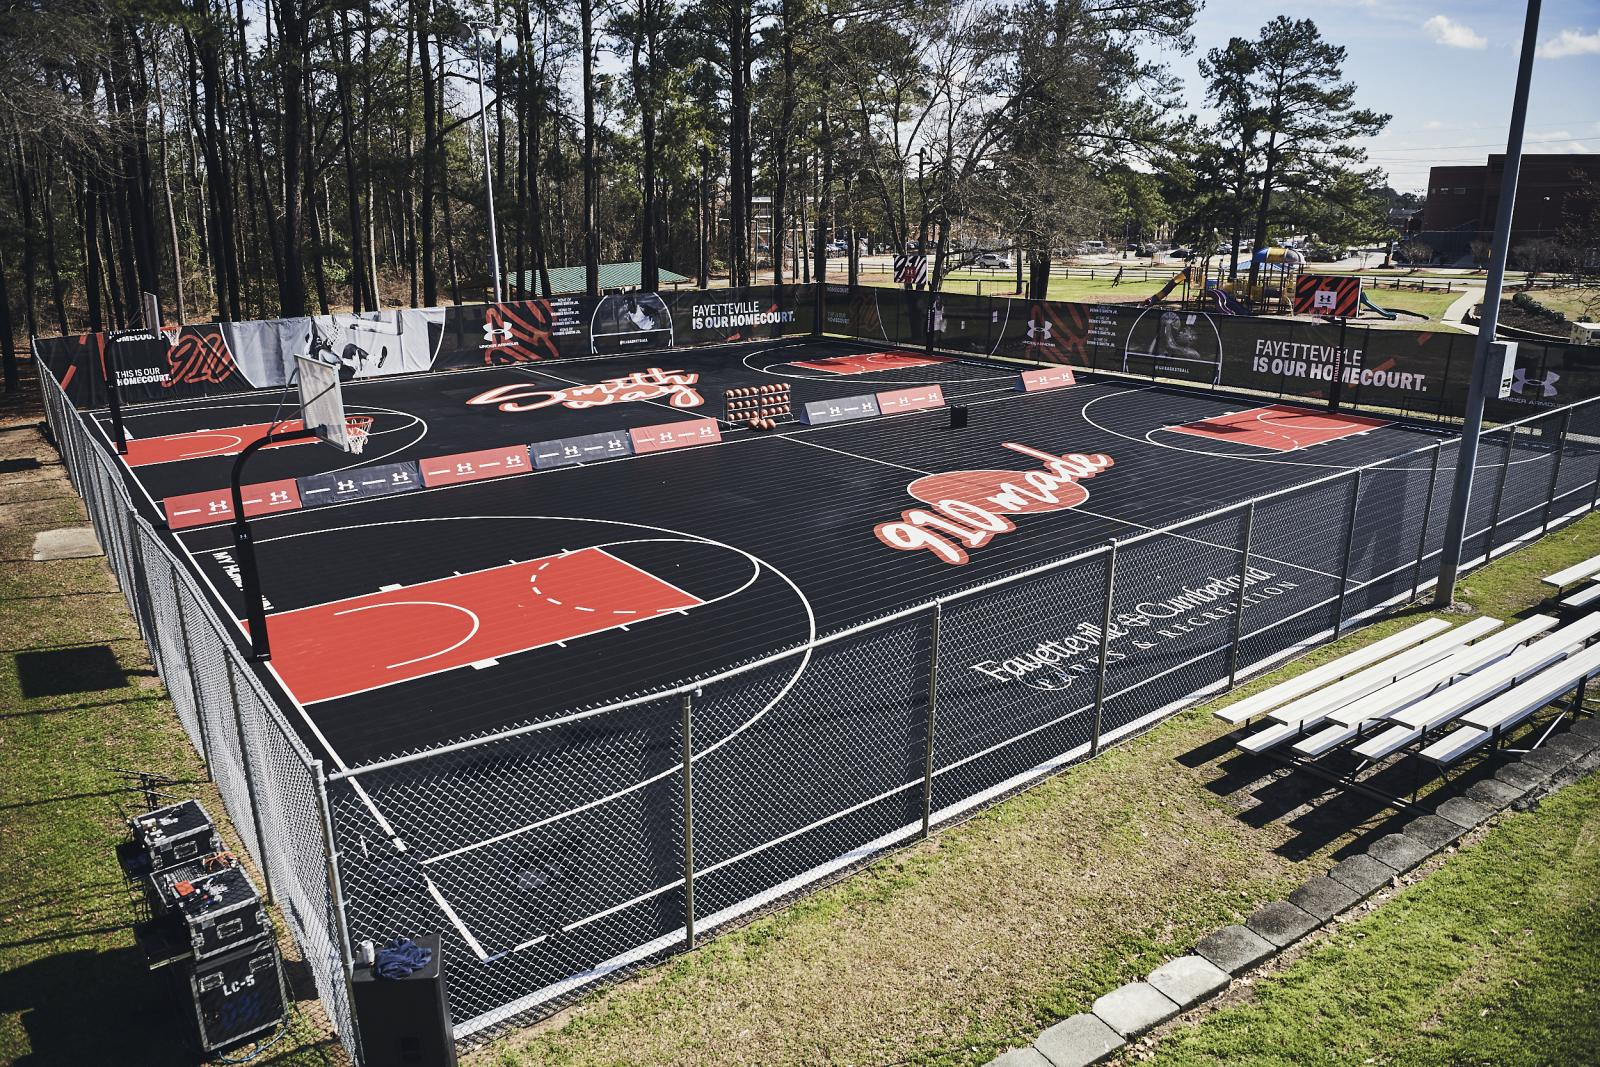 Seabrook Park Basketball Courts at Smith Recreation Center - After Refurbishment